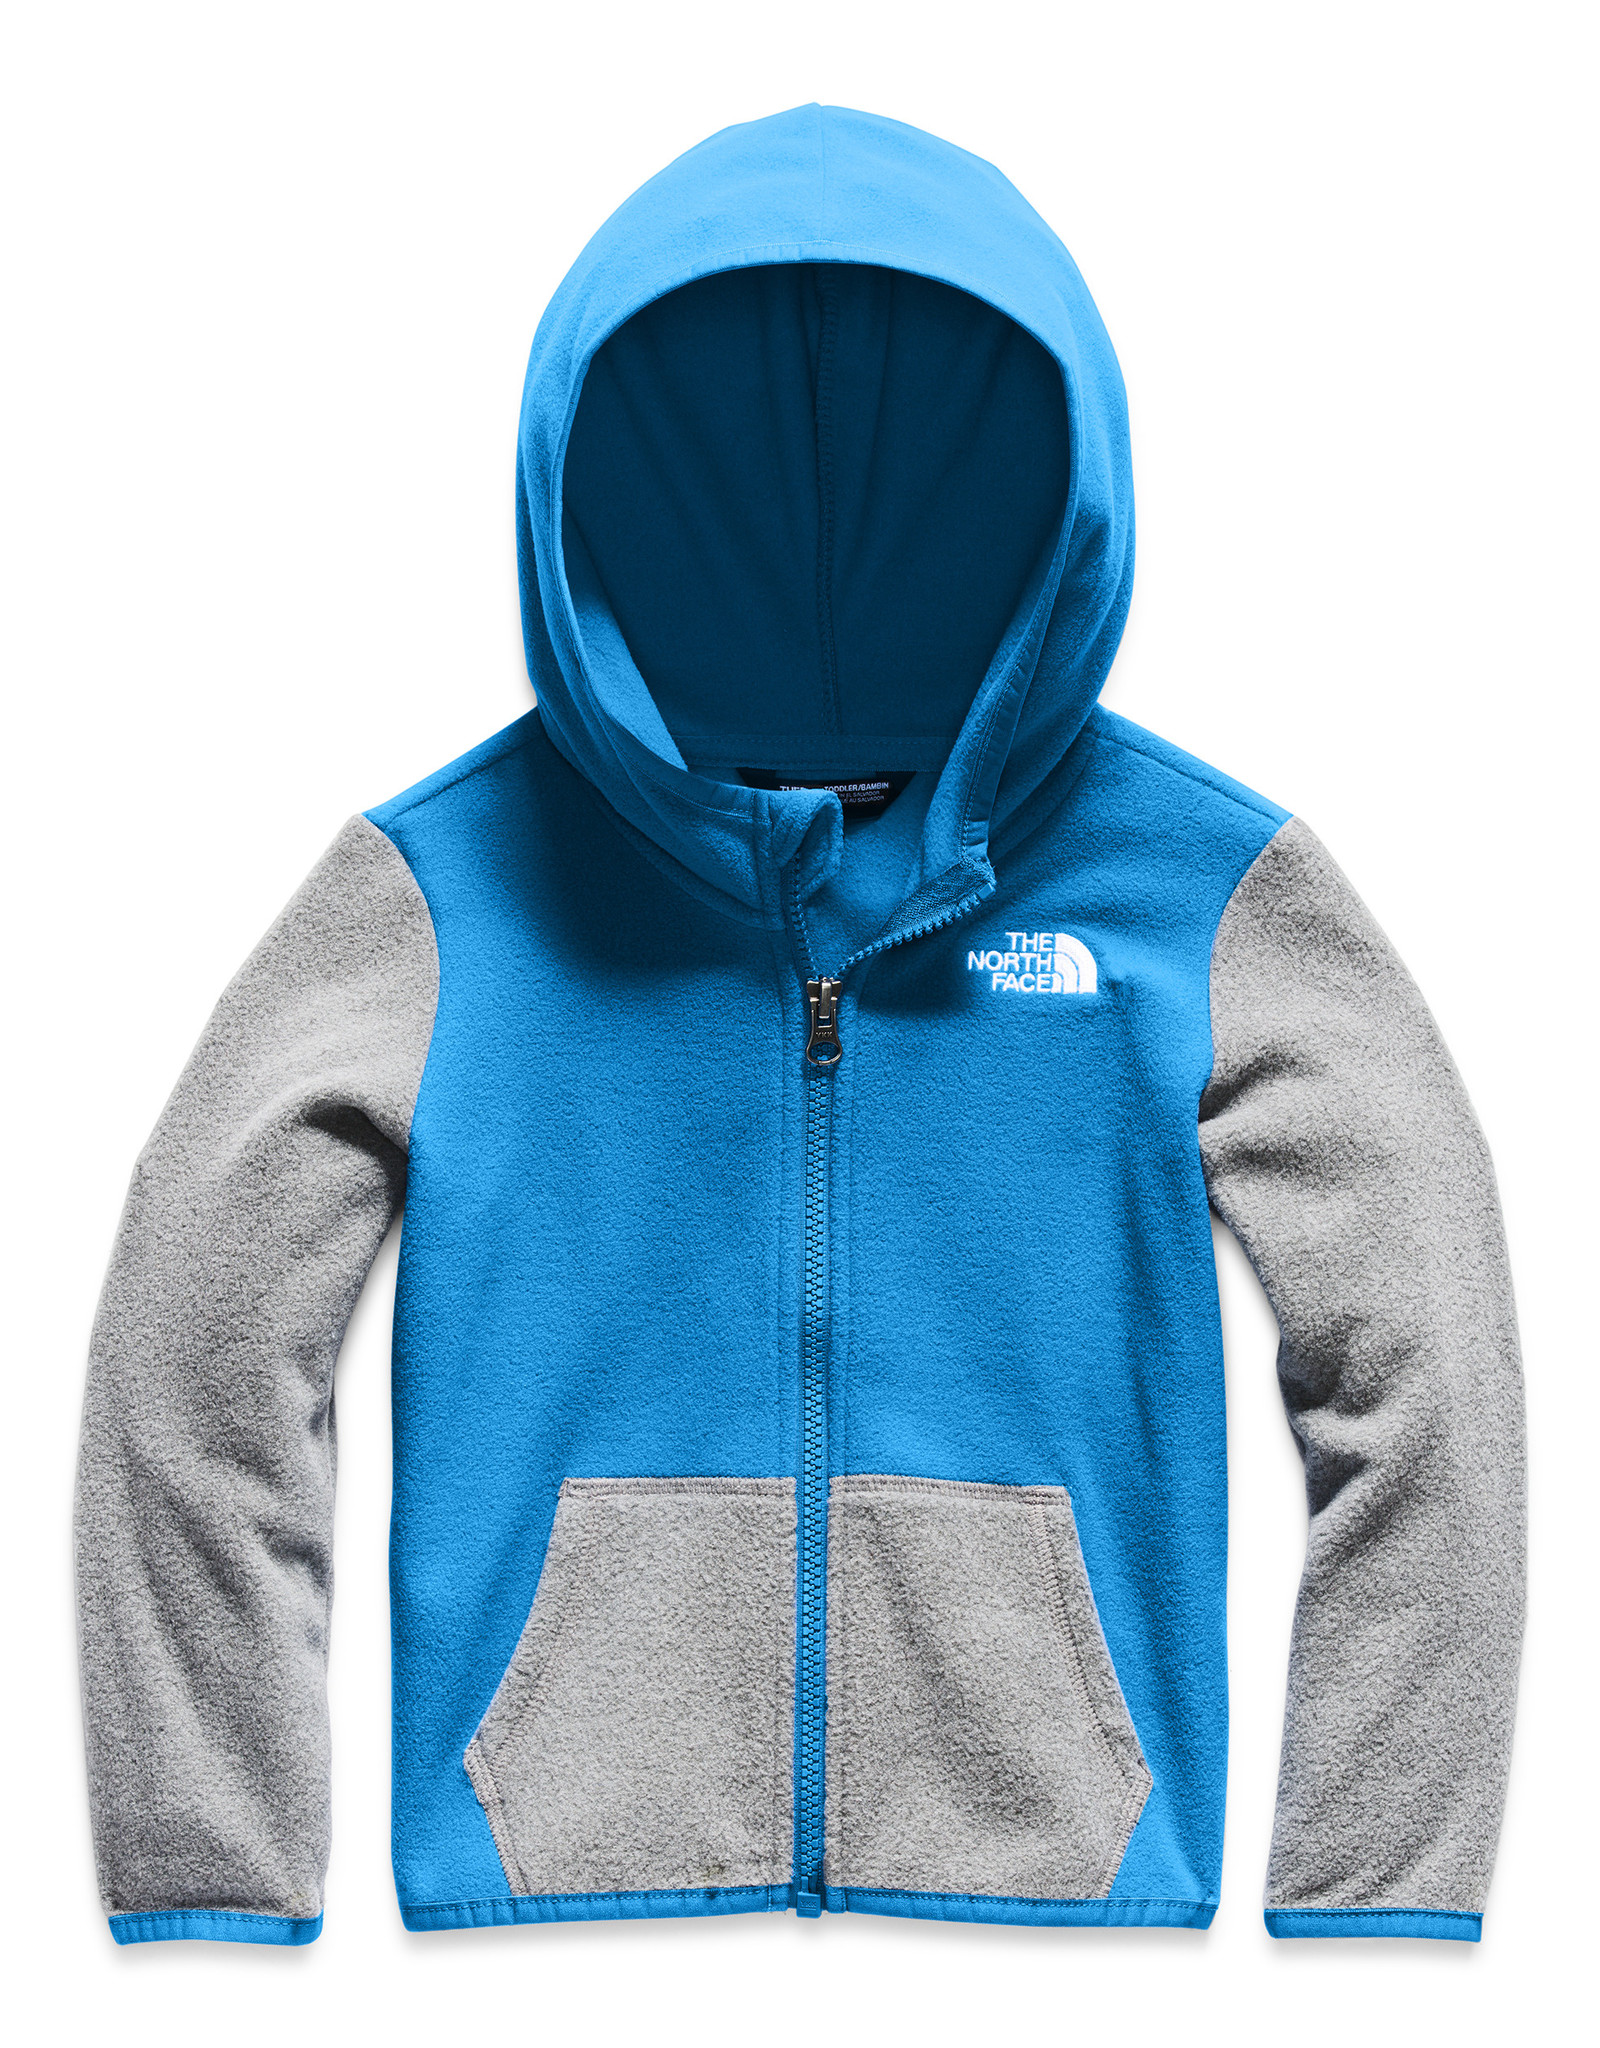 The North Face The North Face Toddler Glacier Full Zip Hoodie - S2020